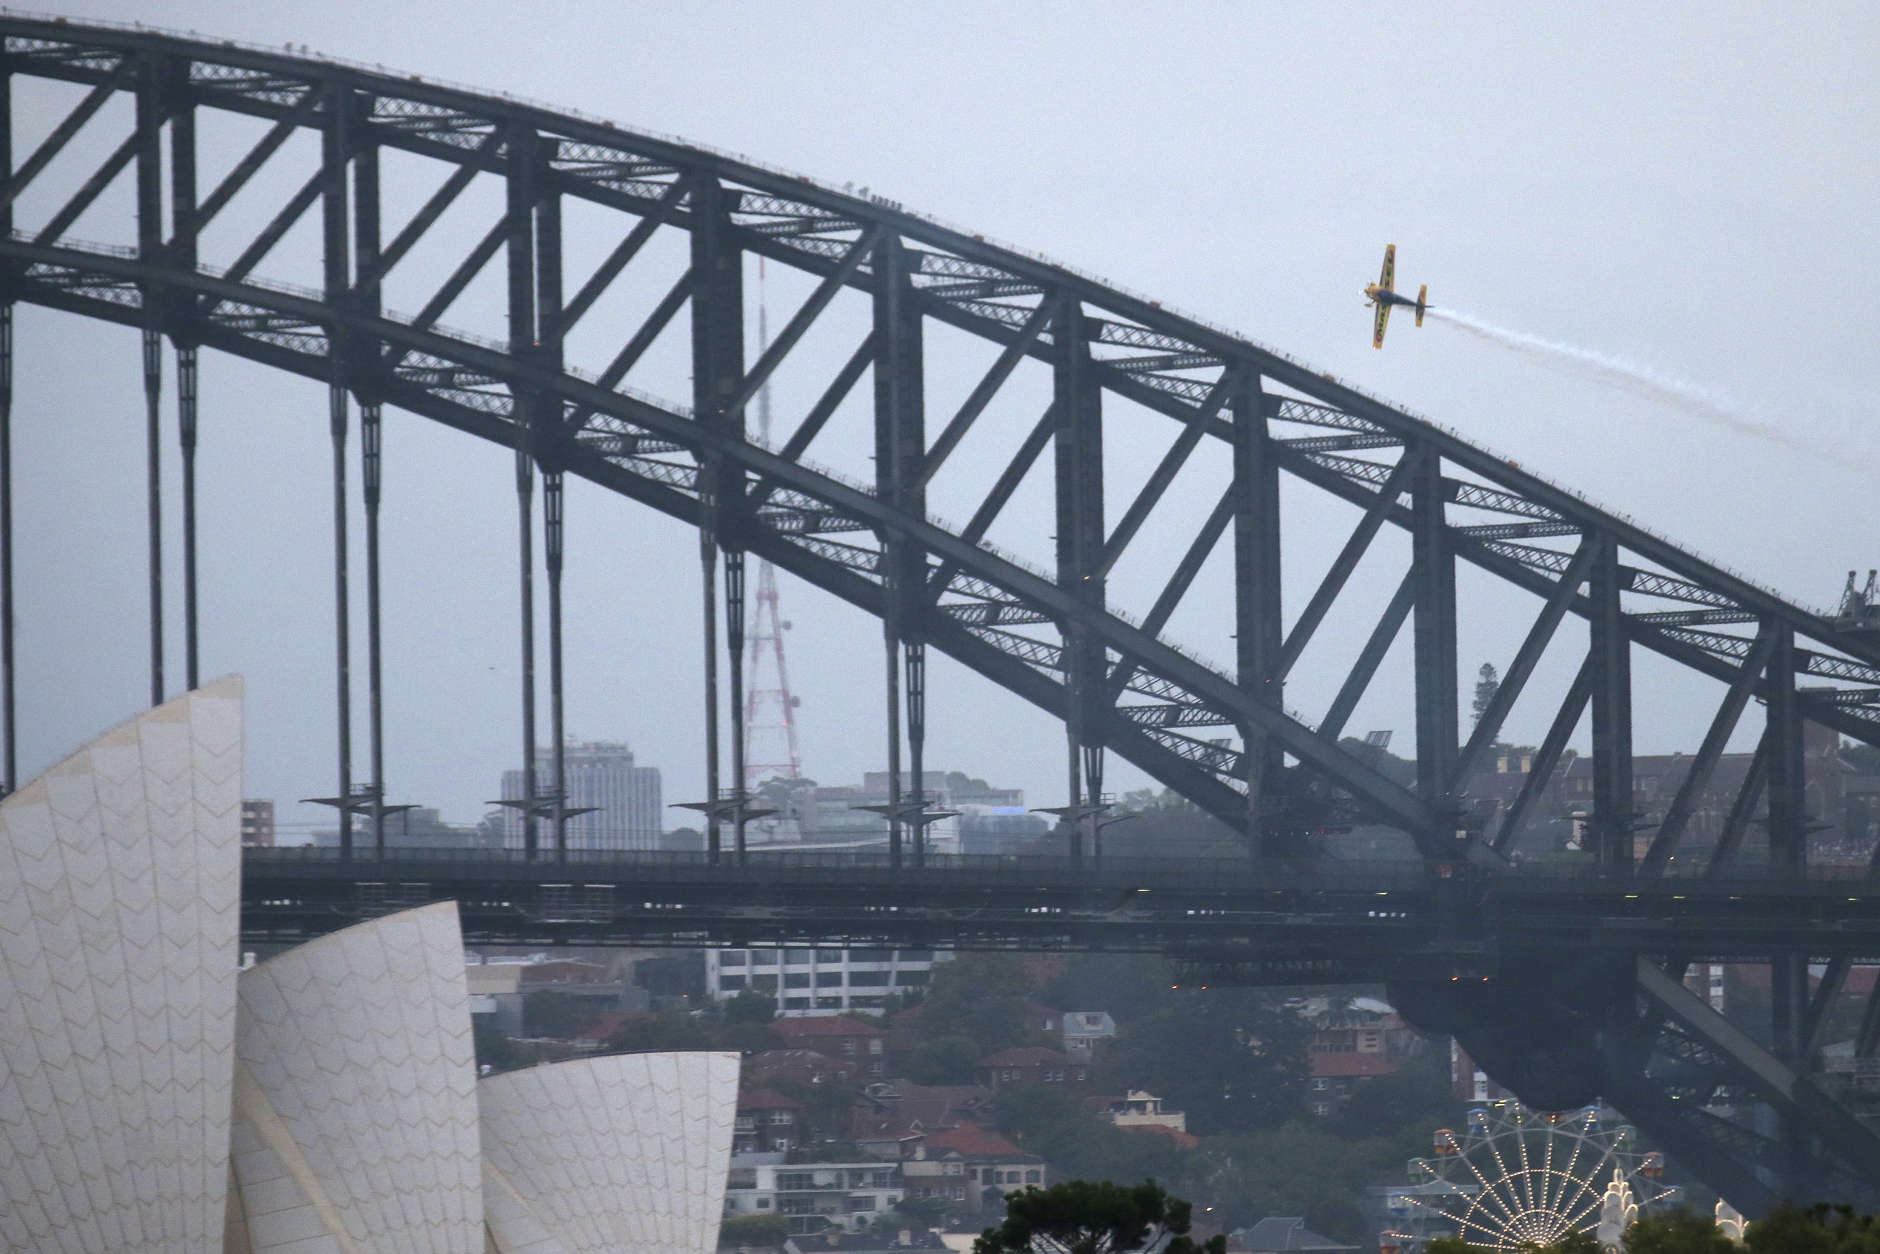 An acrobatic plane maneuvers around the Sydney Opera House and Harbour Bridge as New Year's celebrations get underway in Sydney, Australia, Saturday, Dec. 31, 2016. (AP Photo/Rick Rycroft)